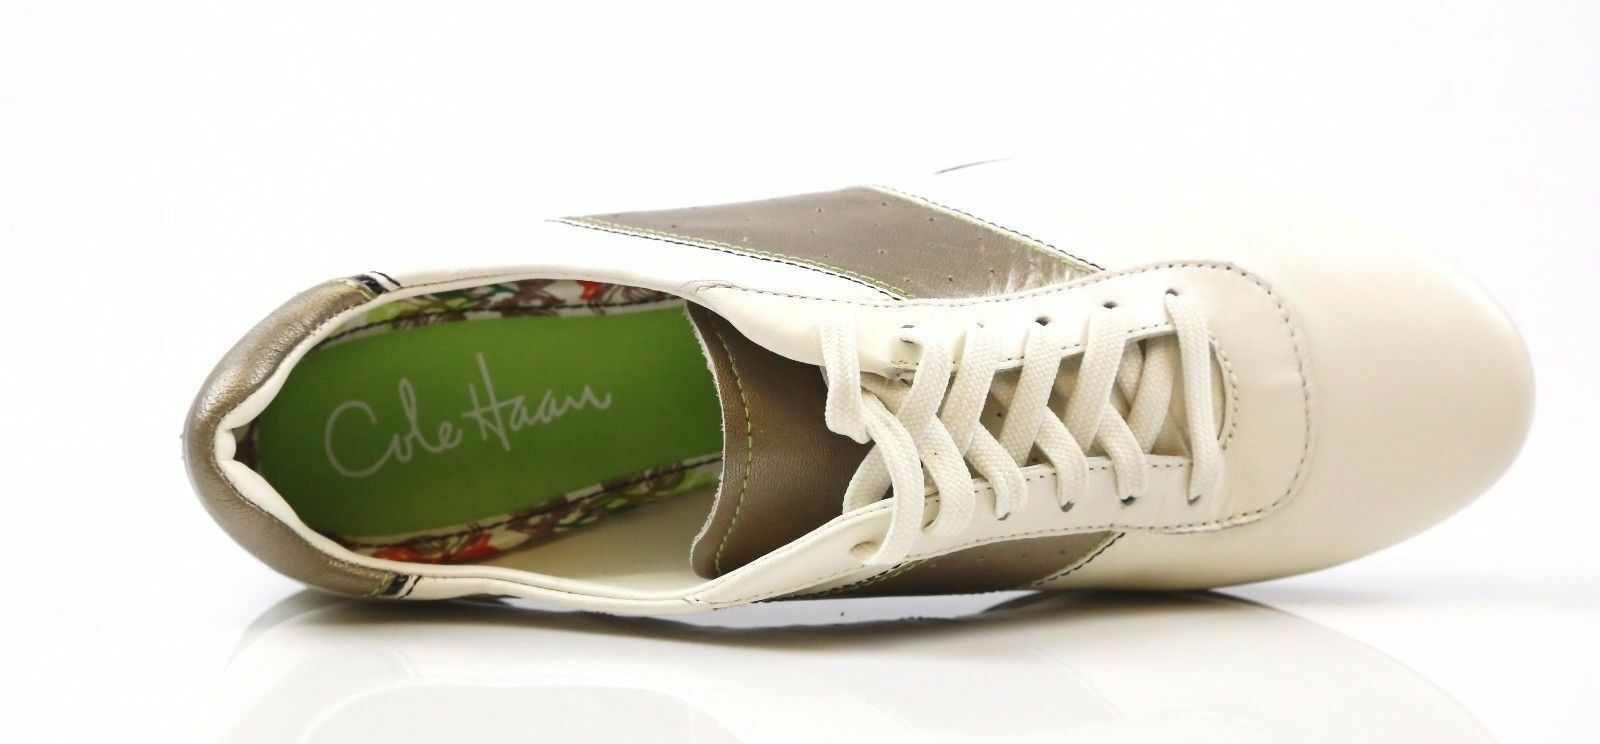 Cole Haan Nike Air Addison Lace Ivory White Fashion Sneakers Size 8.5 B NEW